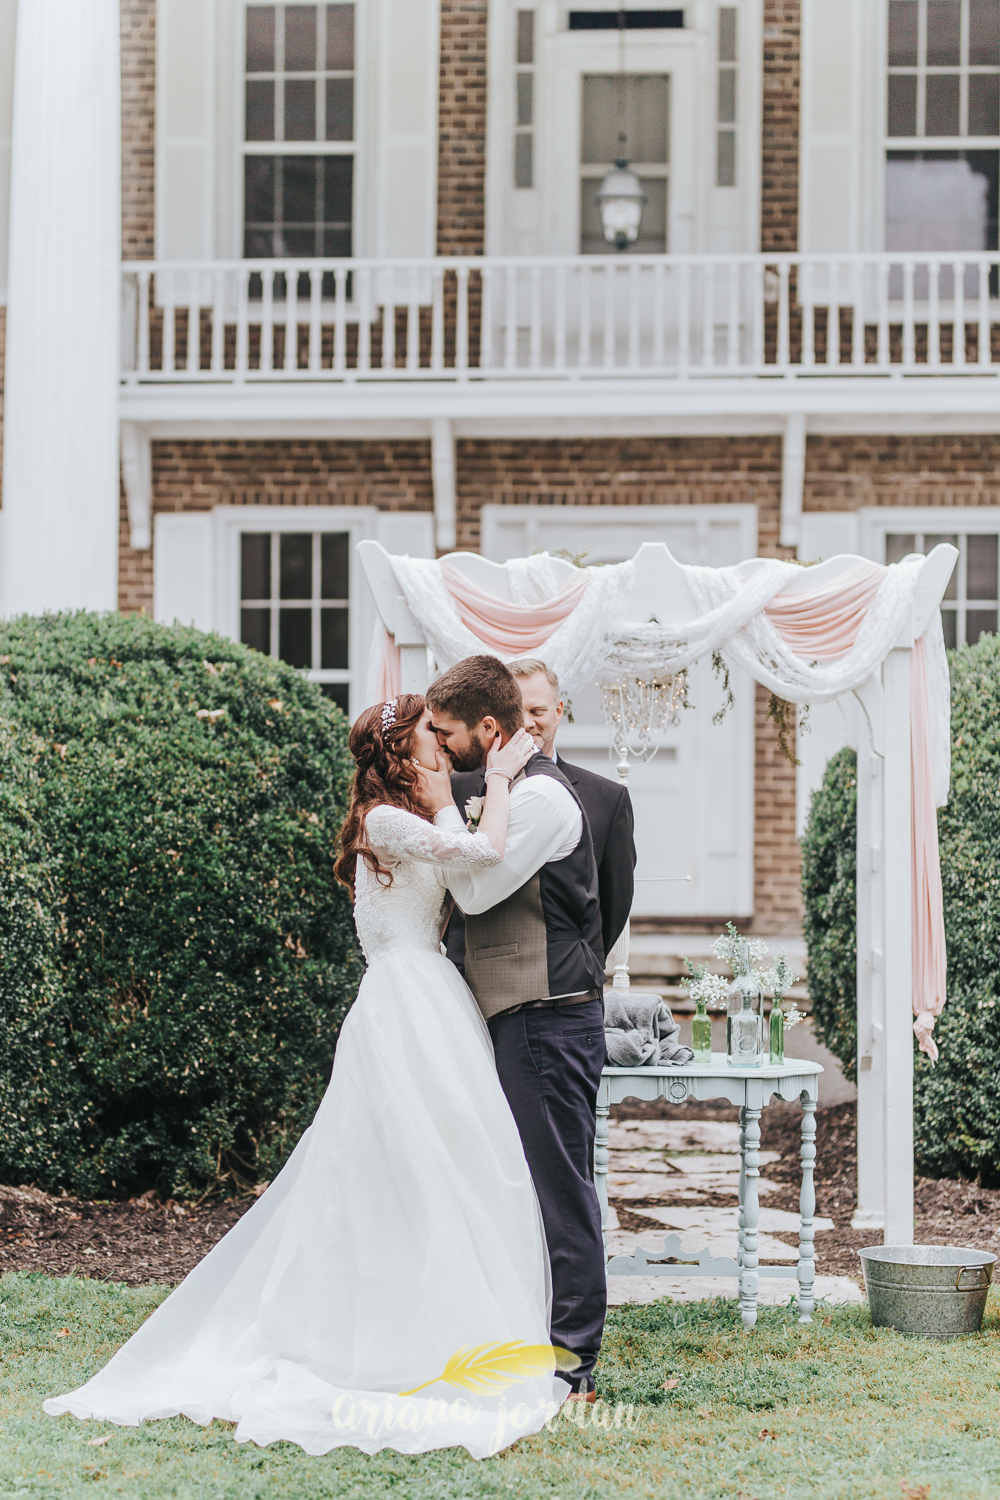 170 - Ariana Jordan - Kentucky Wedding Photographer - Landon & Tabitha_.jpg